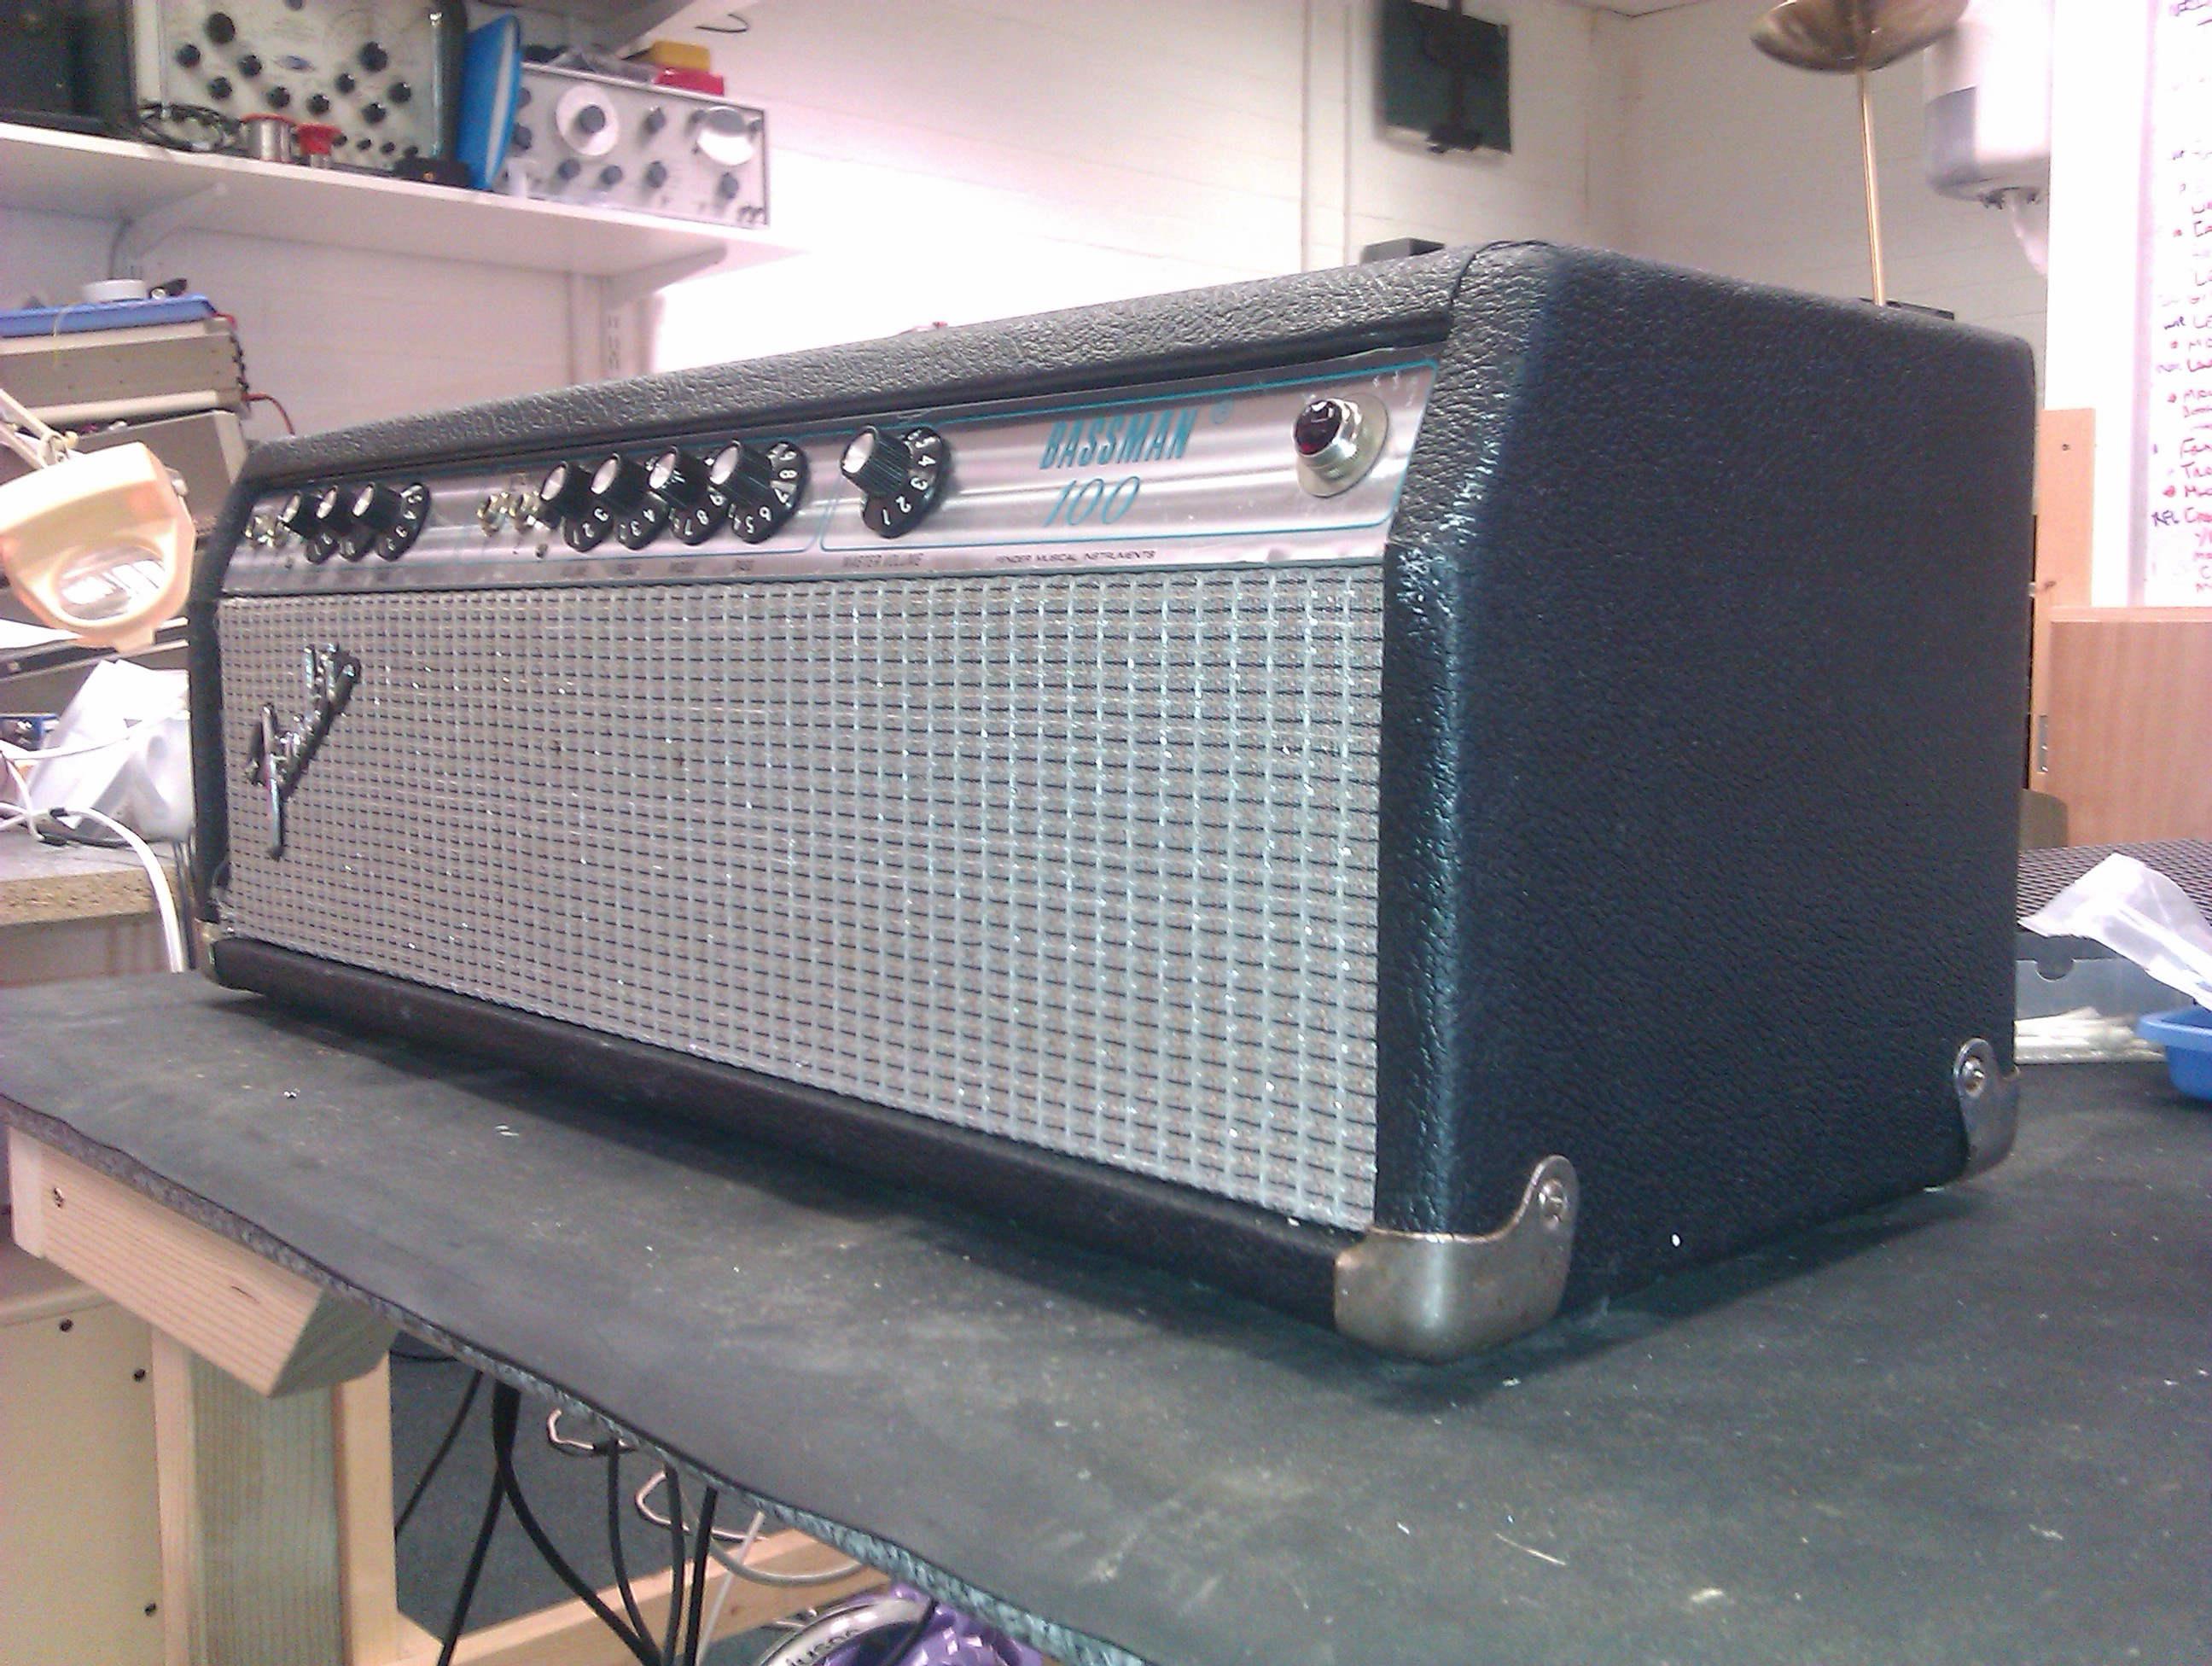 Great classic bass amp, also works superbly as a clean and toneful guitar amp.